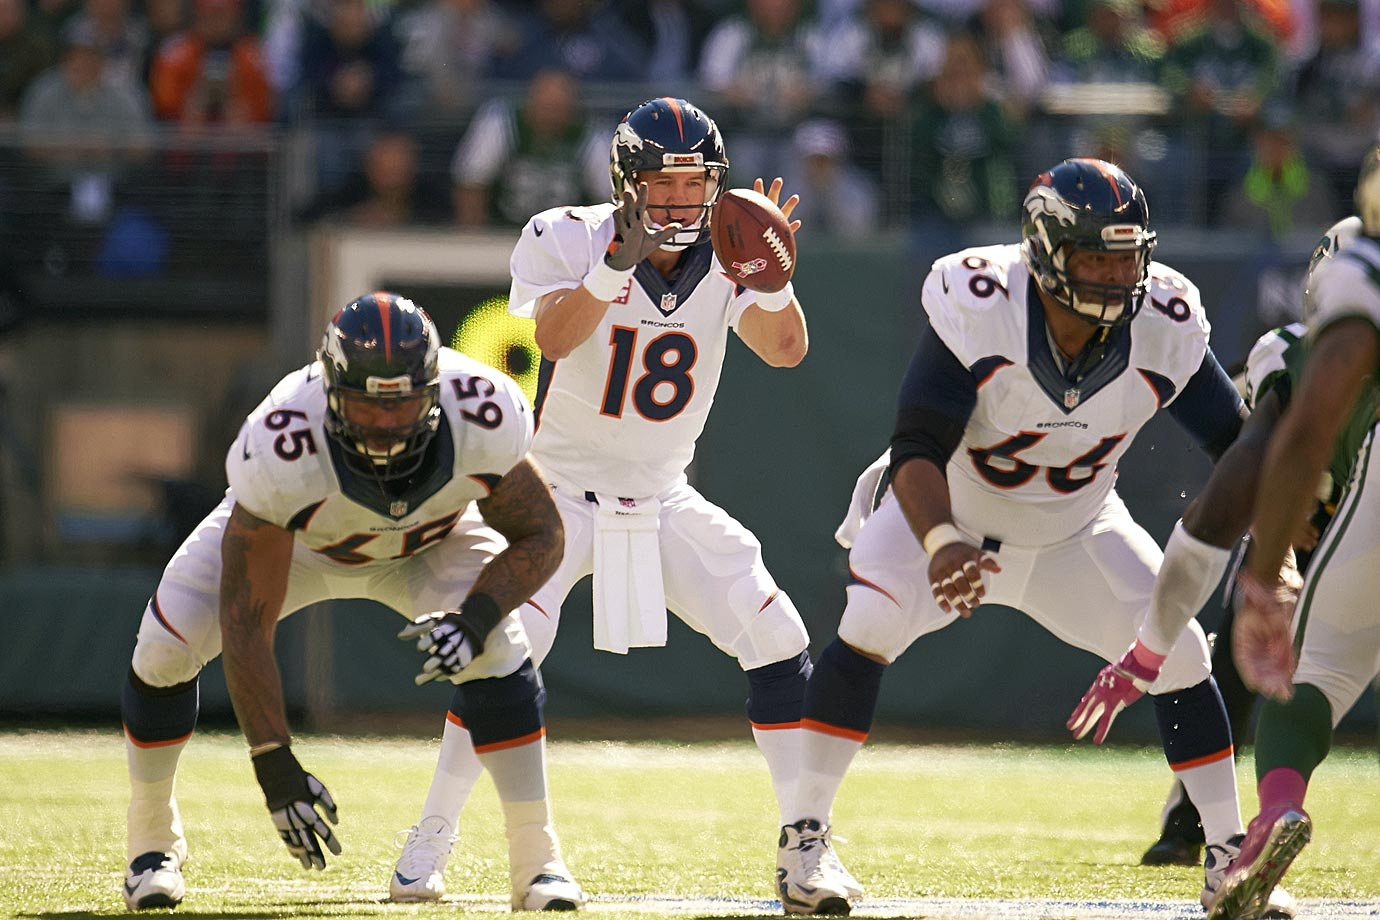 Did Manning's late-season regression in 2014 have more to do with his quadriceps injuries or the inevitable passing of time? If the 39-year-old quarterback makes a full recovery from his injuries and is able to plant and throw as he did in previous years, Denver might be able to get another great season out of him, albeit with fewer attempts and different concepts. But there is concern about Manning's future, and there should be.